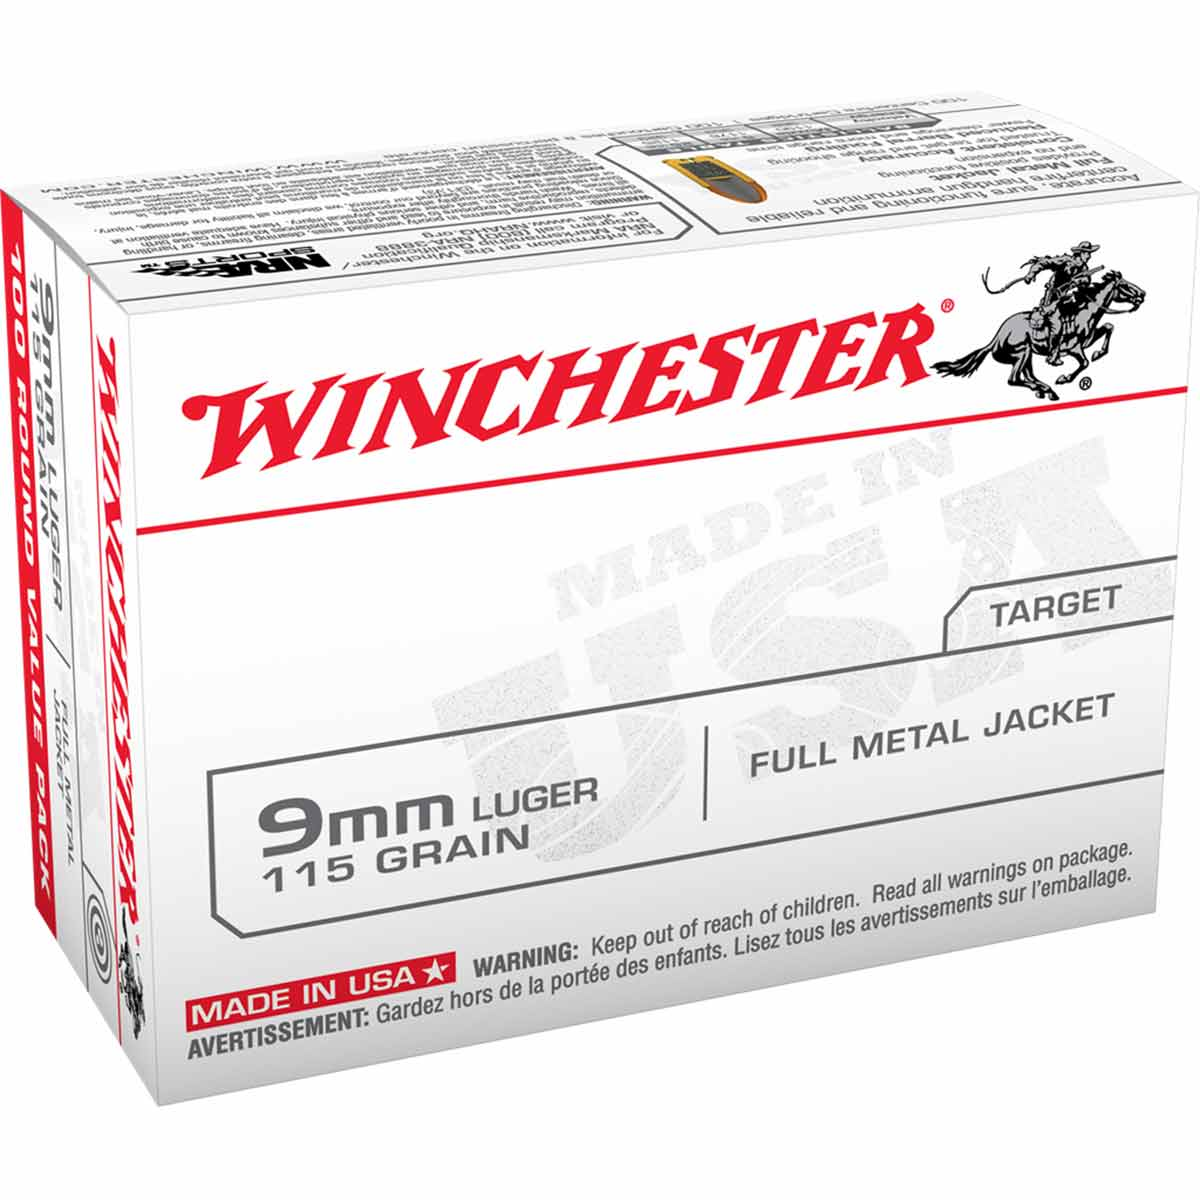 Winchester 9MM Luger Win 115Gr Full Metal Jacket, 100 Round Box_1.jpg